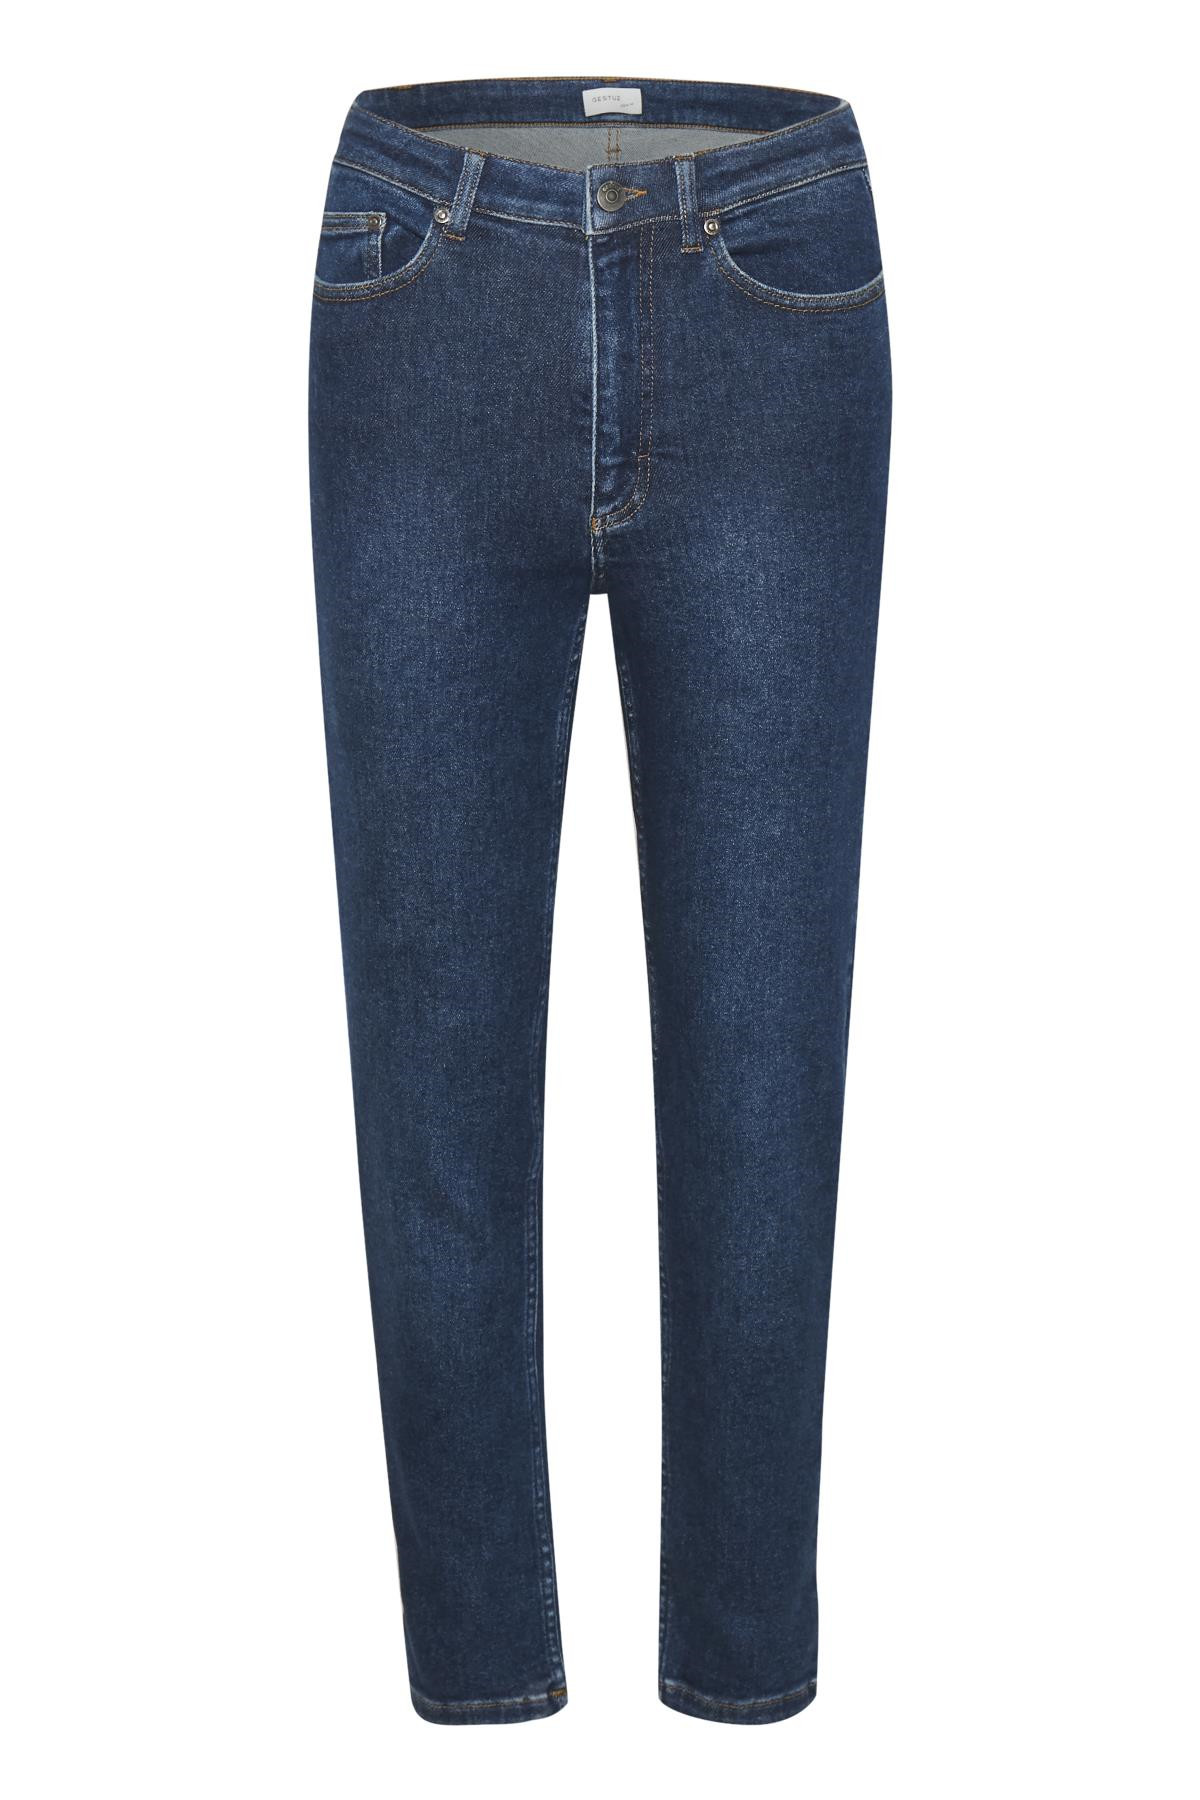 Image of   GESTUZ ASTRIDGZ MOM JEANS (Denim Blue 90009, 30)